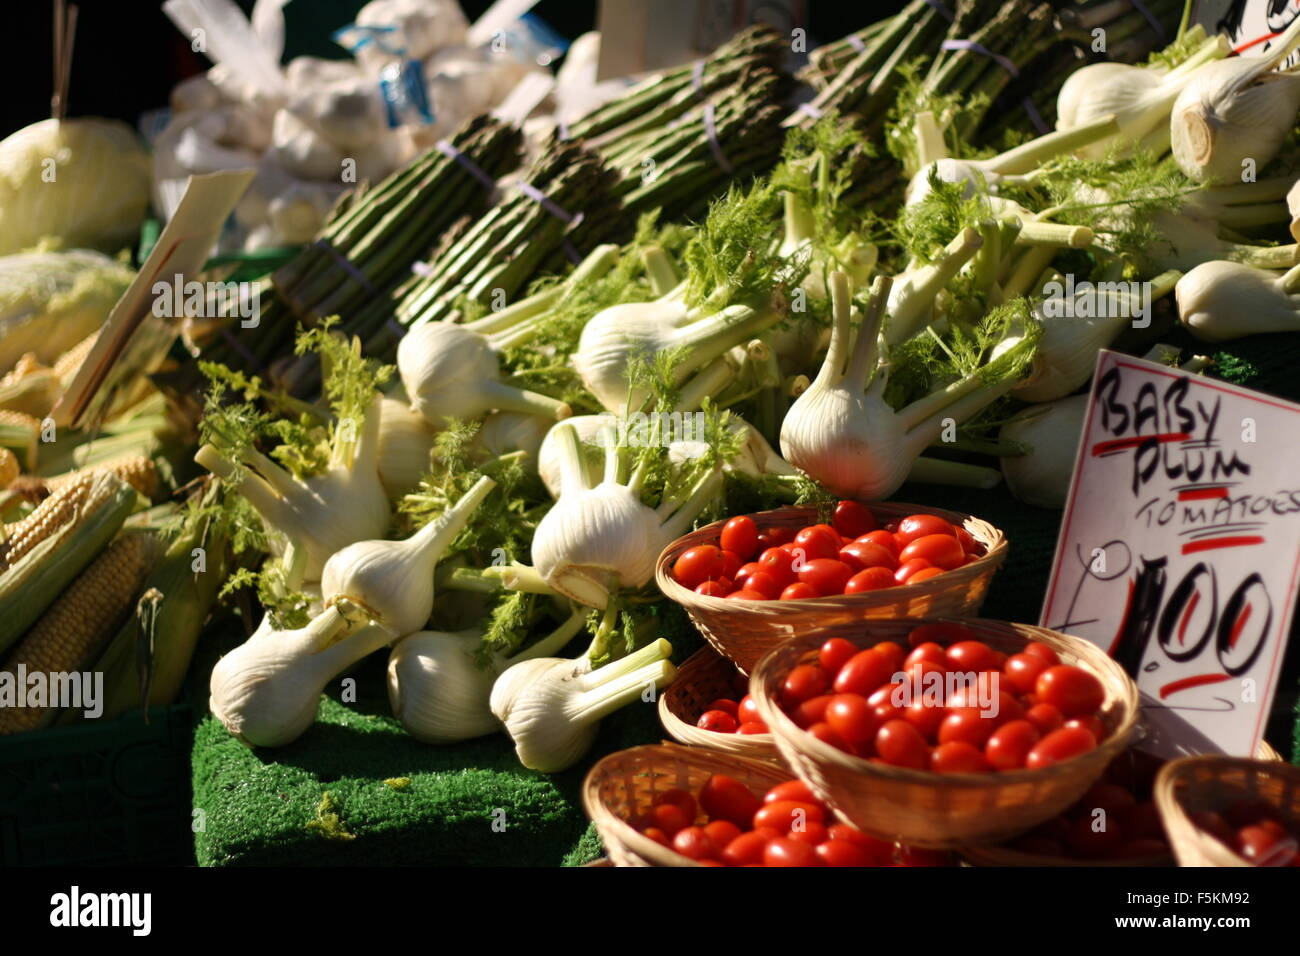 Fresh fruit and vegetables on display at Kingston-upon-Thames Market in London, UK Stock Photo